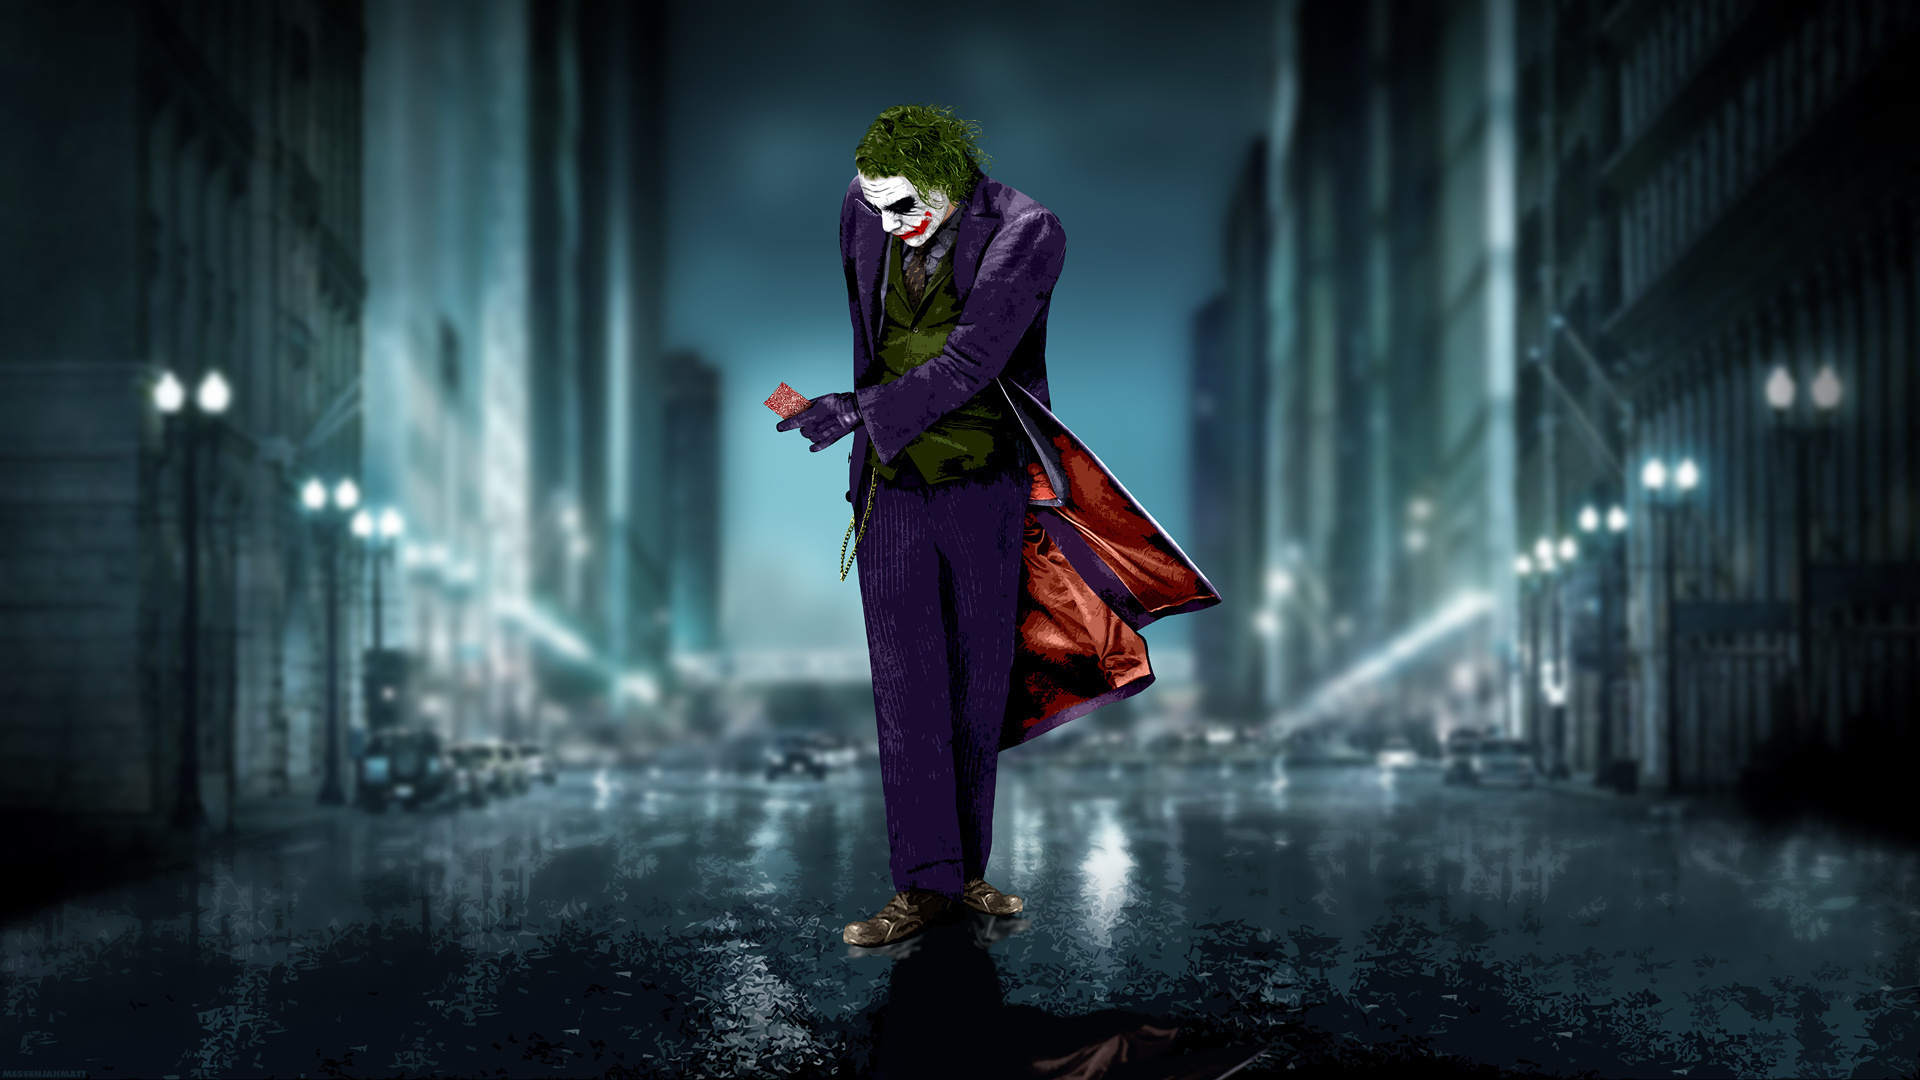 Hollywood Movies Hd Wallpapers: Movie Poster Wallpaper